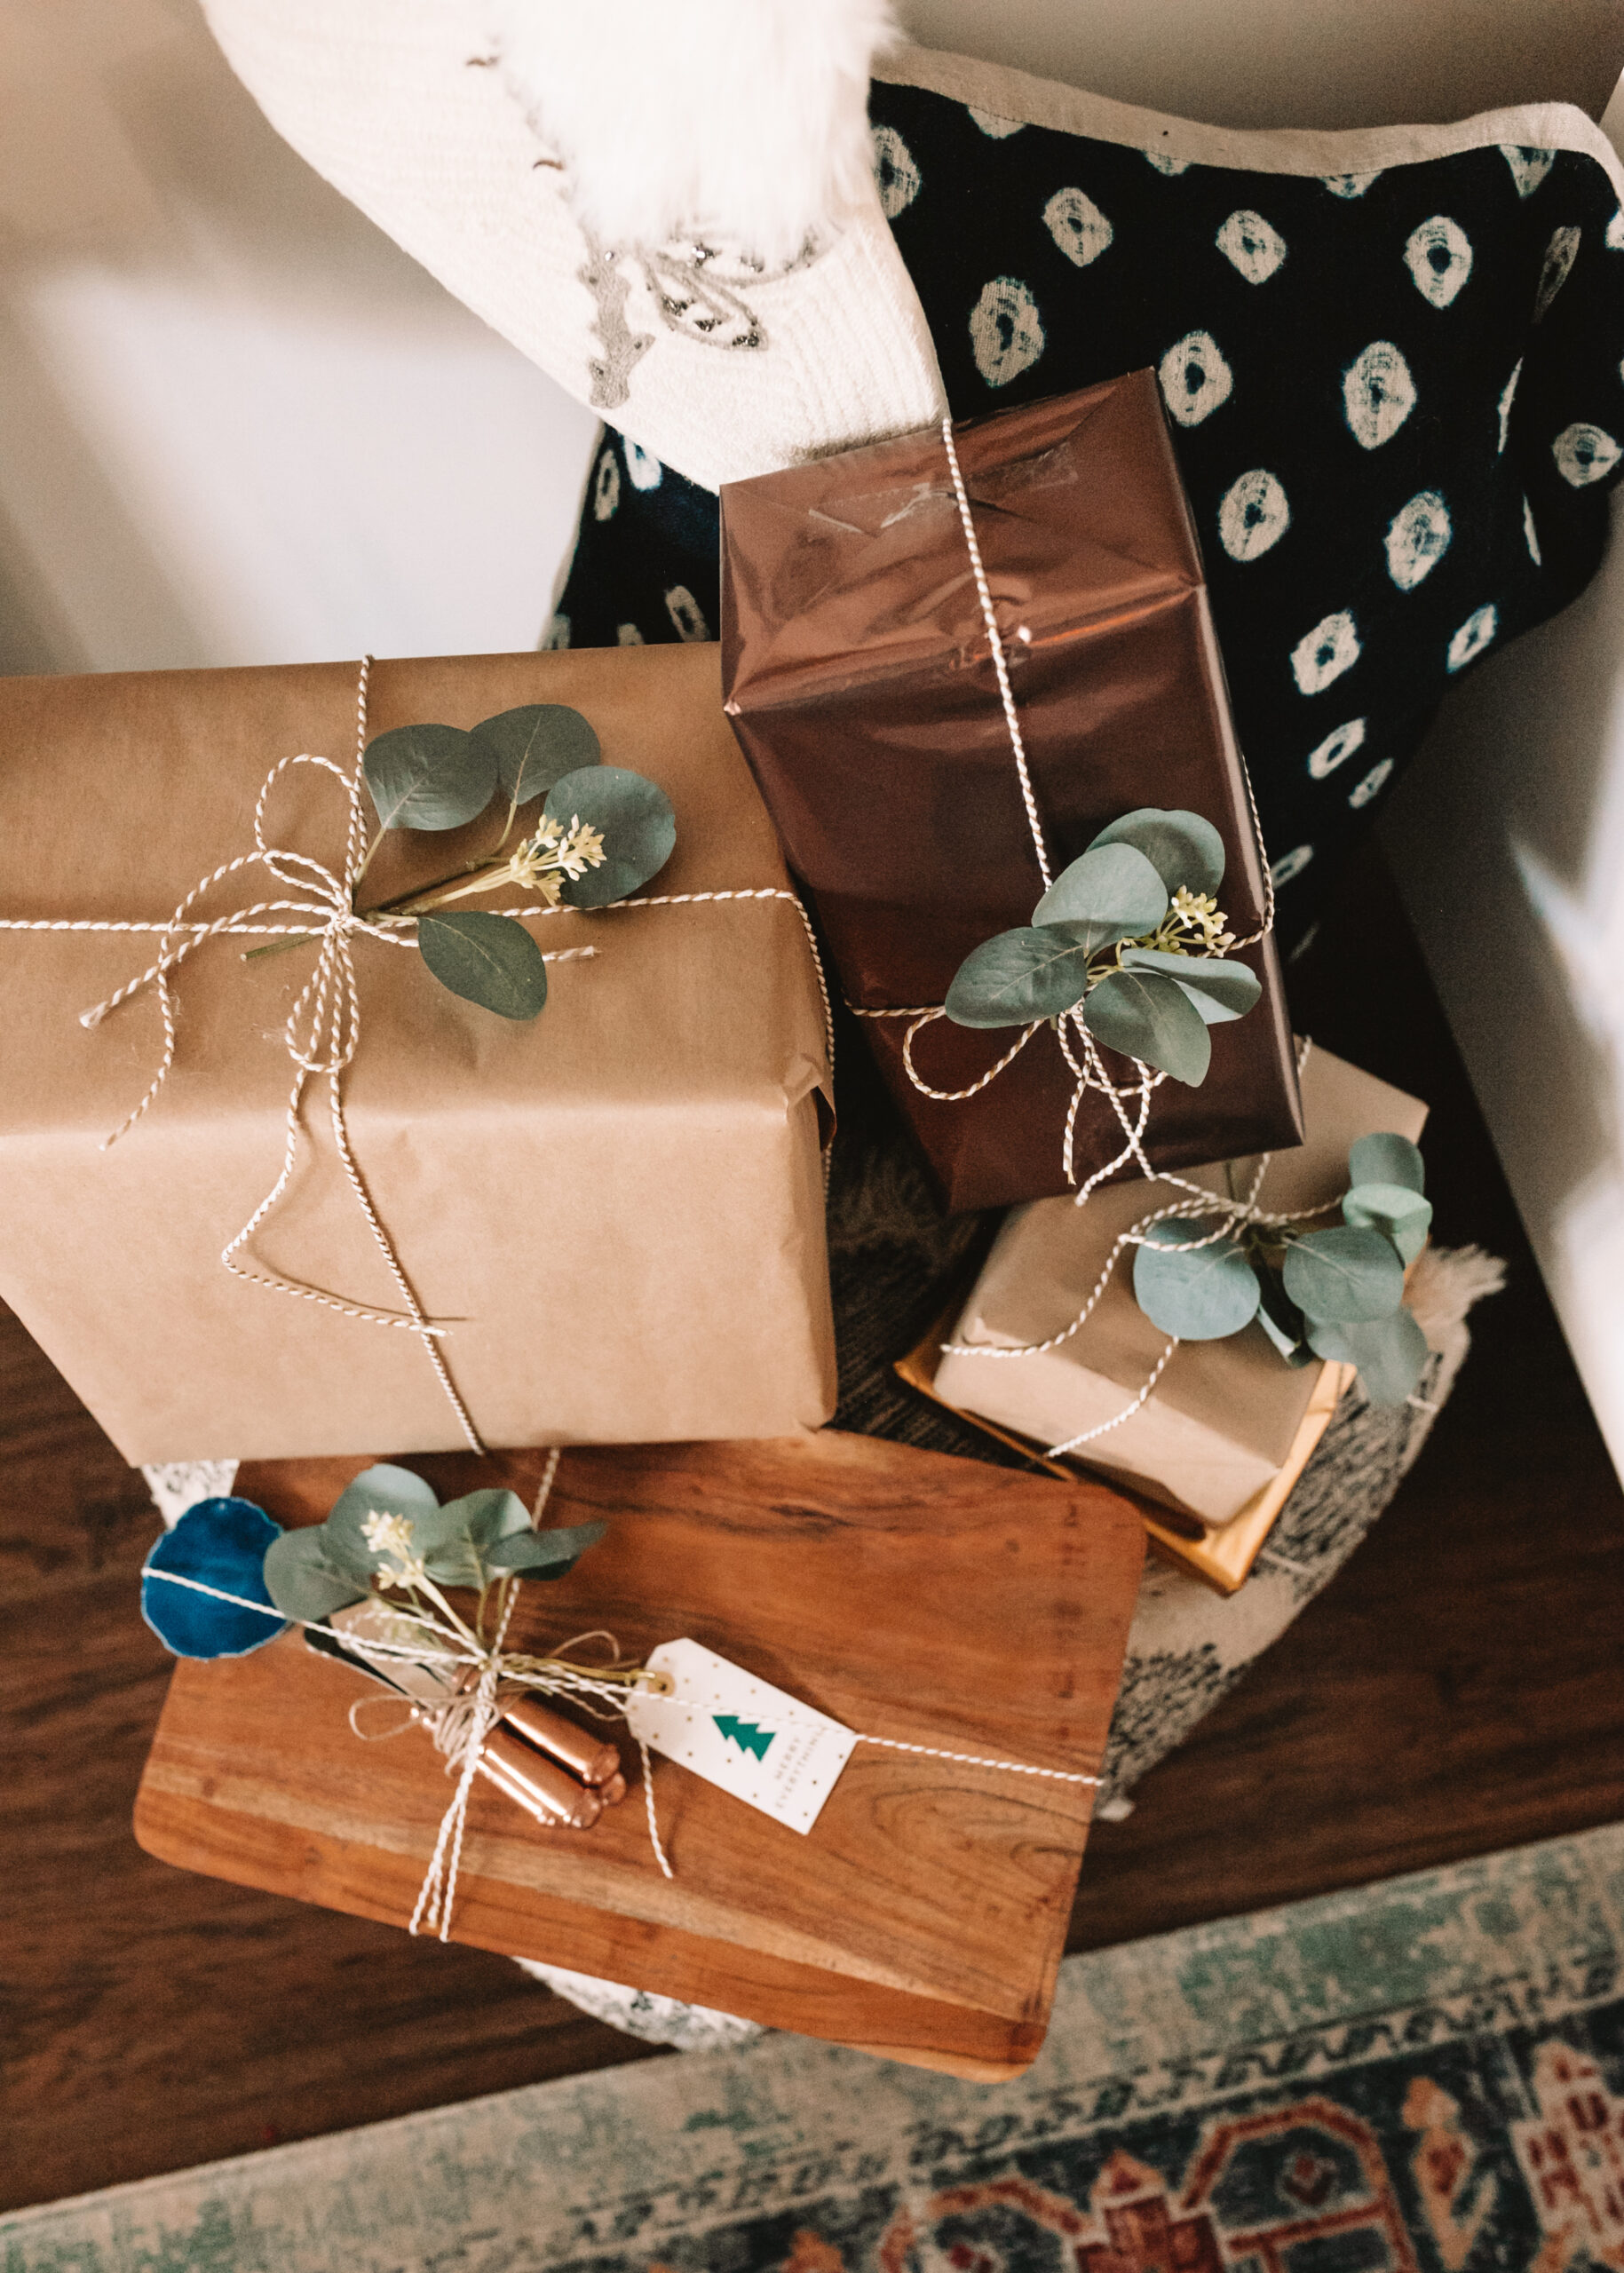 brown paper packages tied up with strings, all ready for holiday gifting! #thelovedesignedlife #holidaygiftguide #wrappingpaper